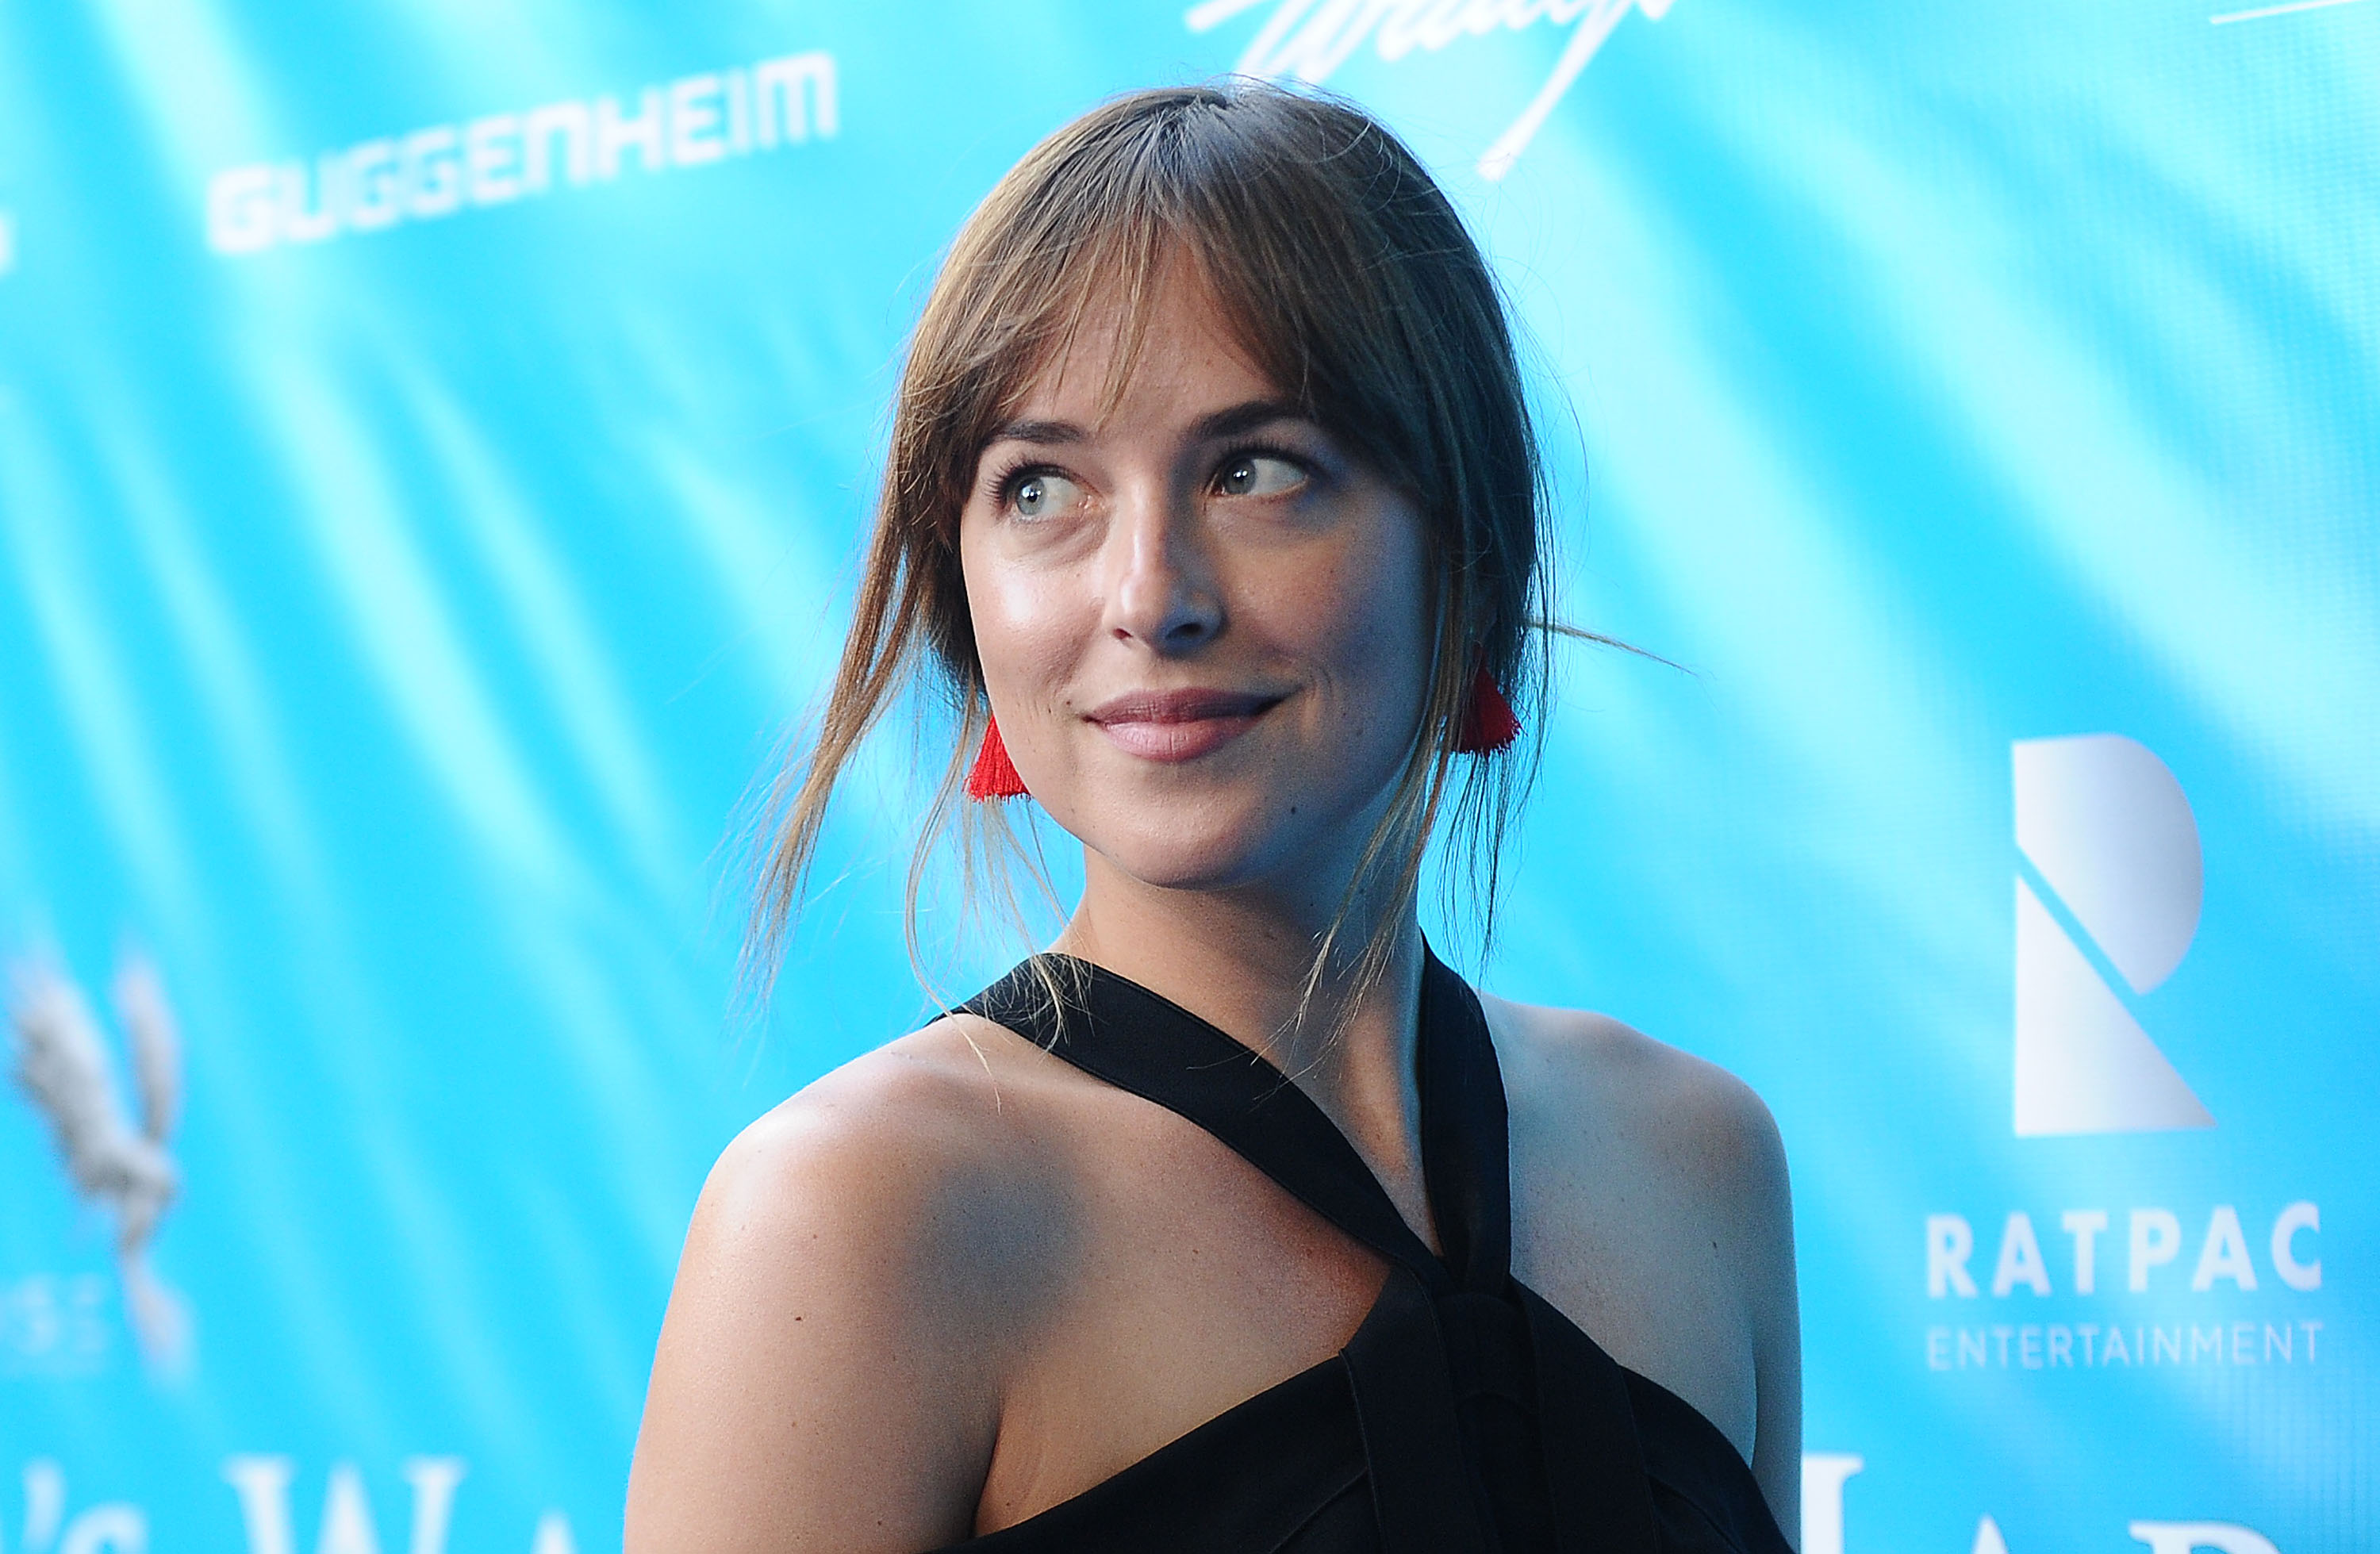 Dakota Johnson's airport style is perfectly on point